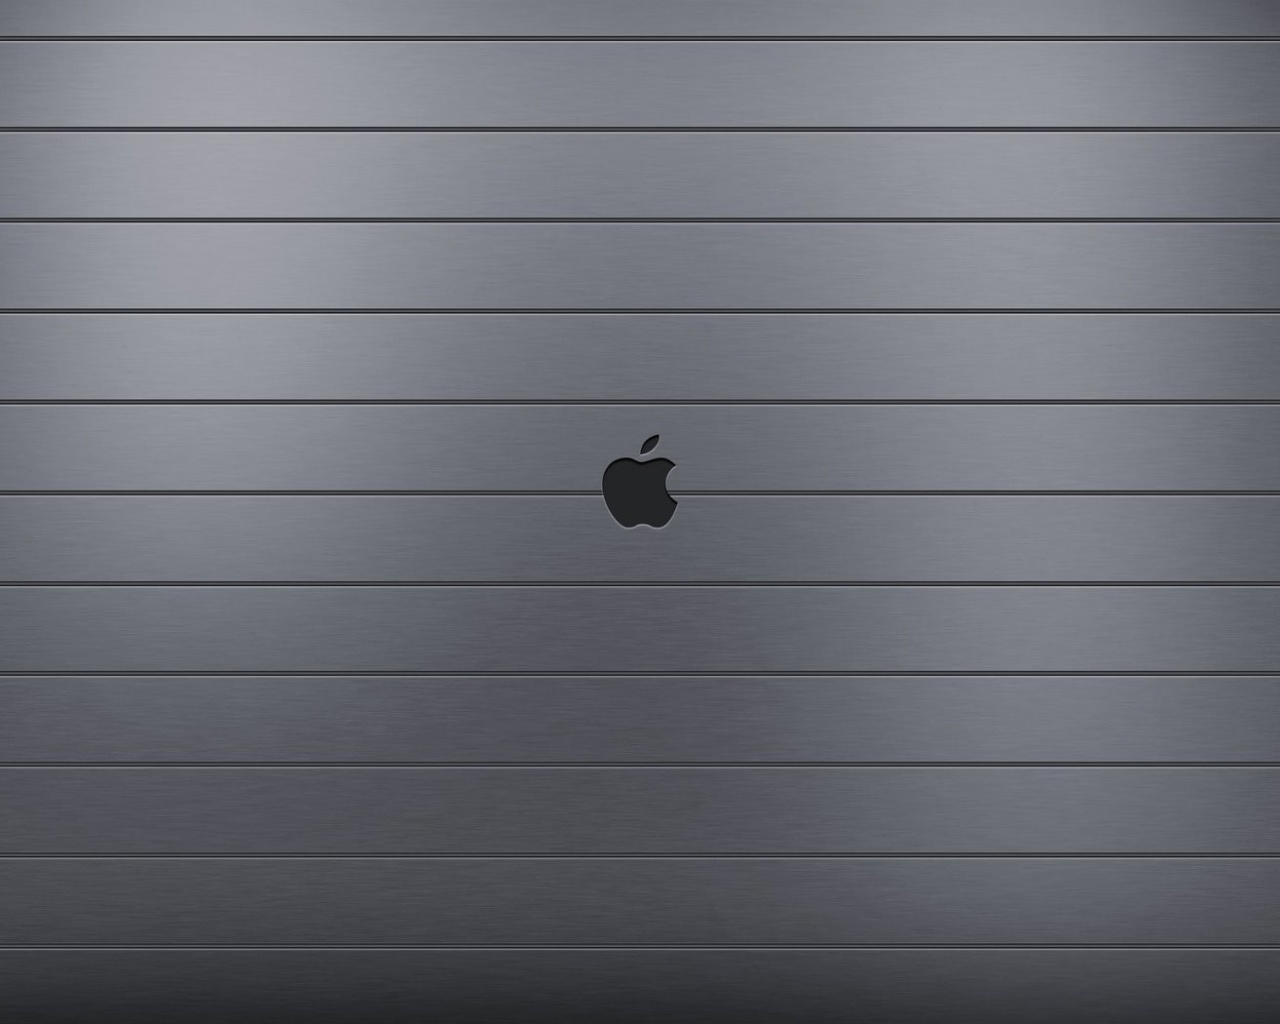 click to free download the wallpaper--Pics of Apple Logo, Apple on Metal, Crossed Straight Lines, is Impressive and Wide in Use 1280X1024 free wallpaper download